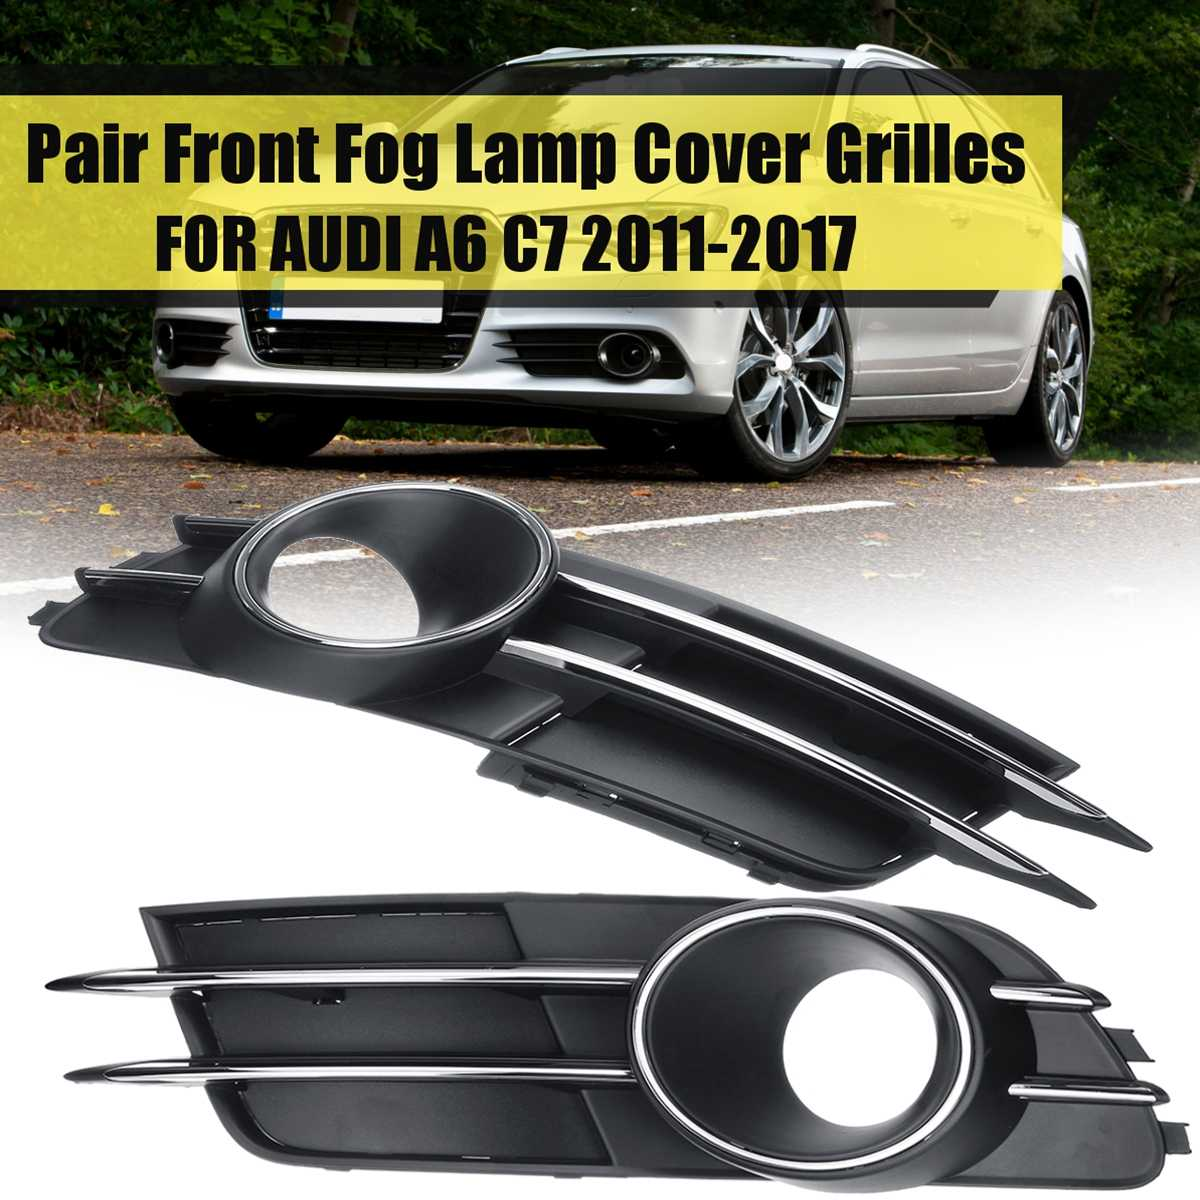 Car Fog Light Grille Lamp Cover for AUDI A6 C7 2011 2012 2013 2014 2015 2016 2017 Vent Pair  Accessiories Front Lower BumperCar Fog Light Grille Lamp Cover for AUDI A6 C7 2011 2012 2013 2014 2015 2016 2017 Vent Pair  Accessiories Front Lower Bumper